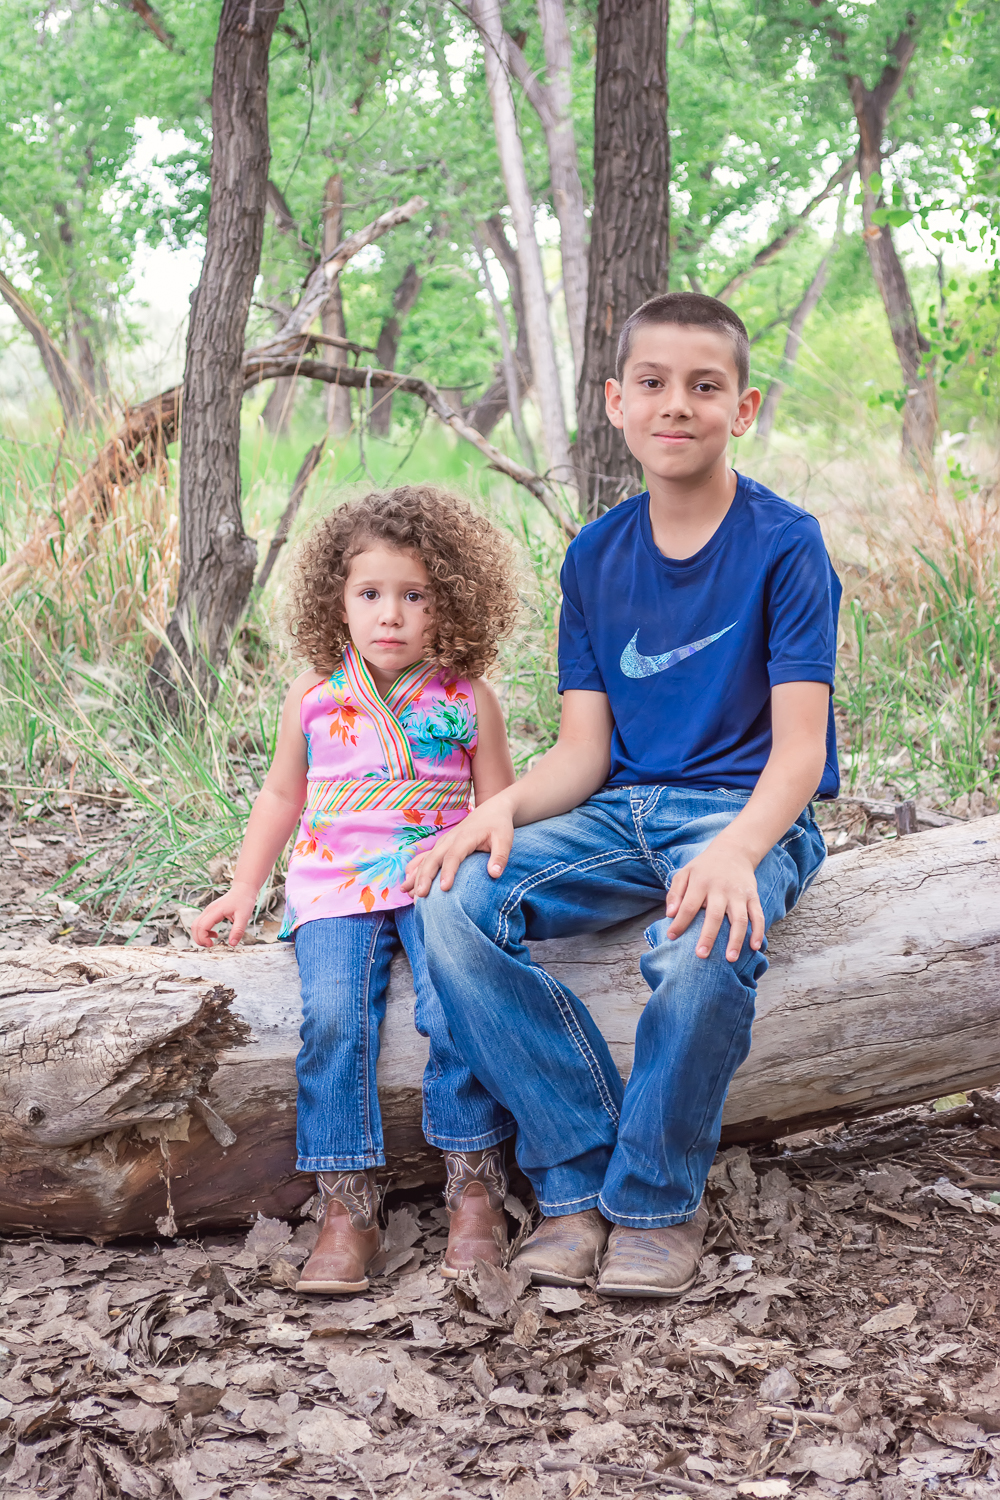 Sibling Portrait, Childhood Friendship, Cottonwood Forest, Fall Family Photos, Outdoor Family Portraits, Albuquerque Photographer